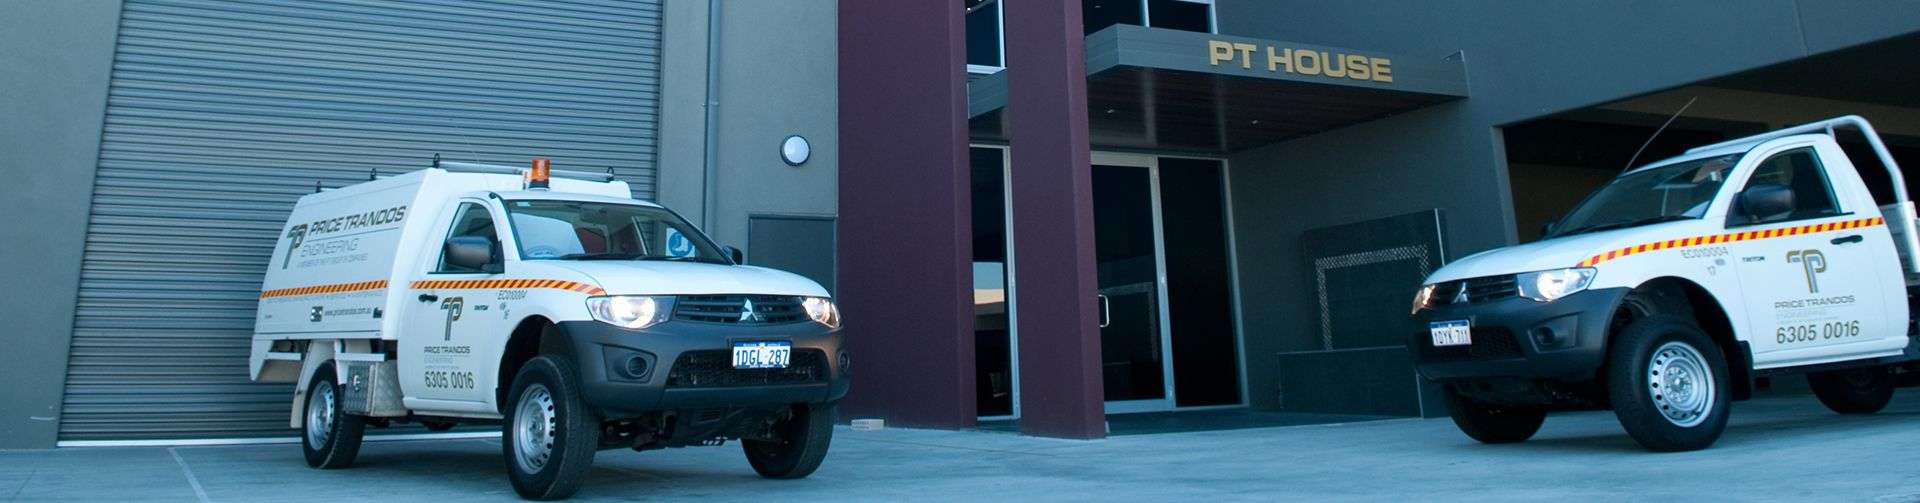 price trandos engineering service vehicles at the office